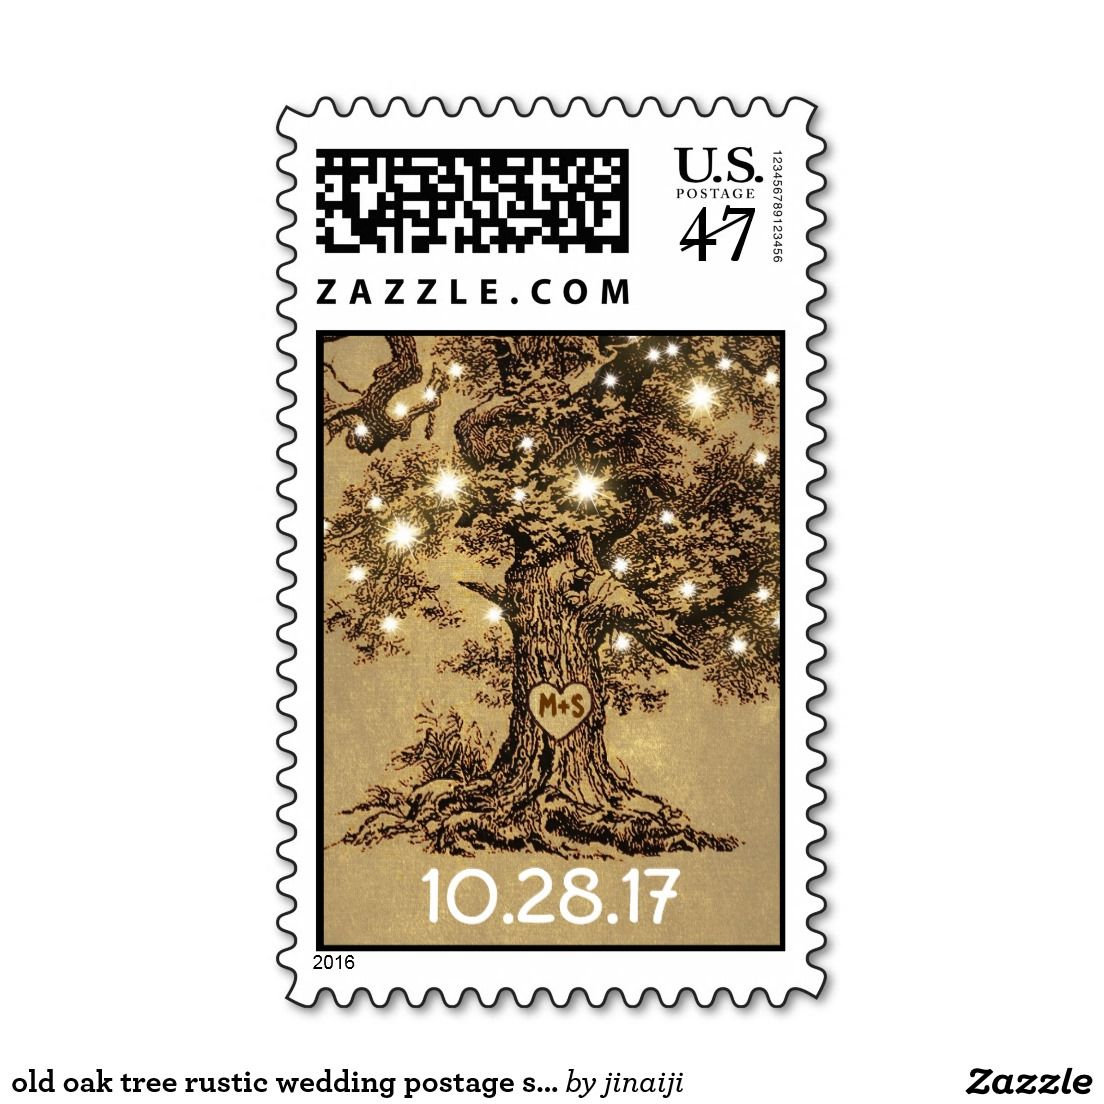 Old Oak Tree Rustic Wedding Postage Stamps Wedding Postage Stamps